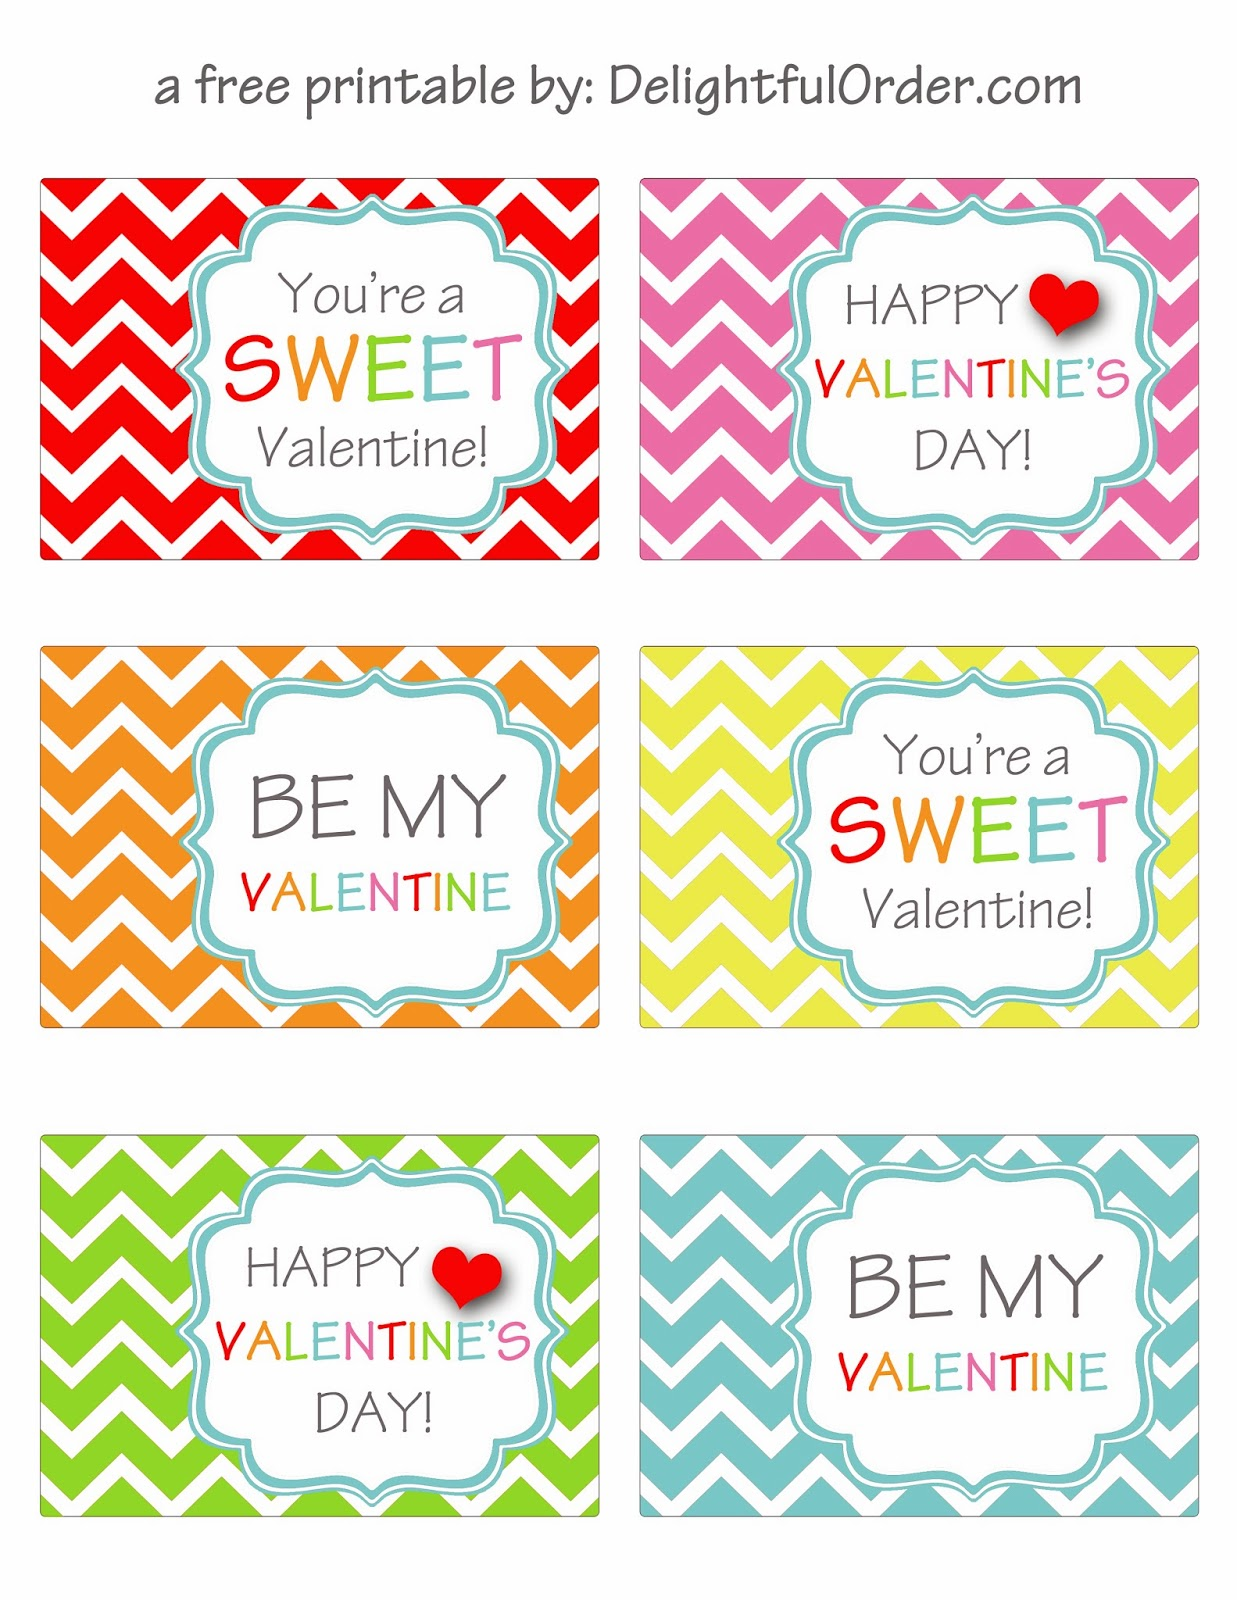 photo regarding Valentine's Day Tags Printable called Scrumptious Purchase: Cost-free Printable Valentines Working day Tags